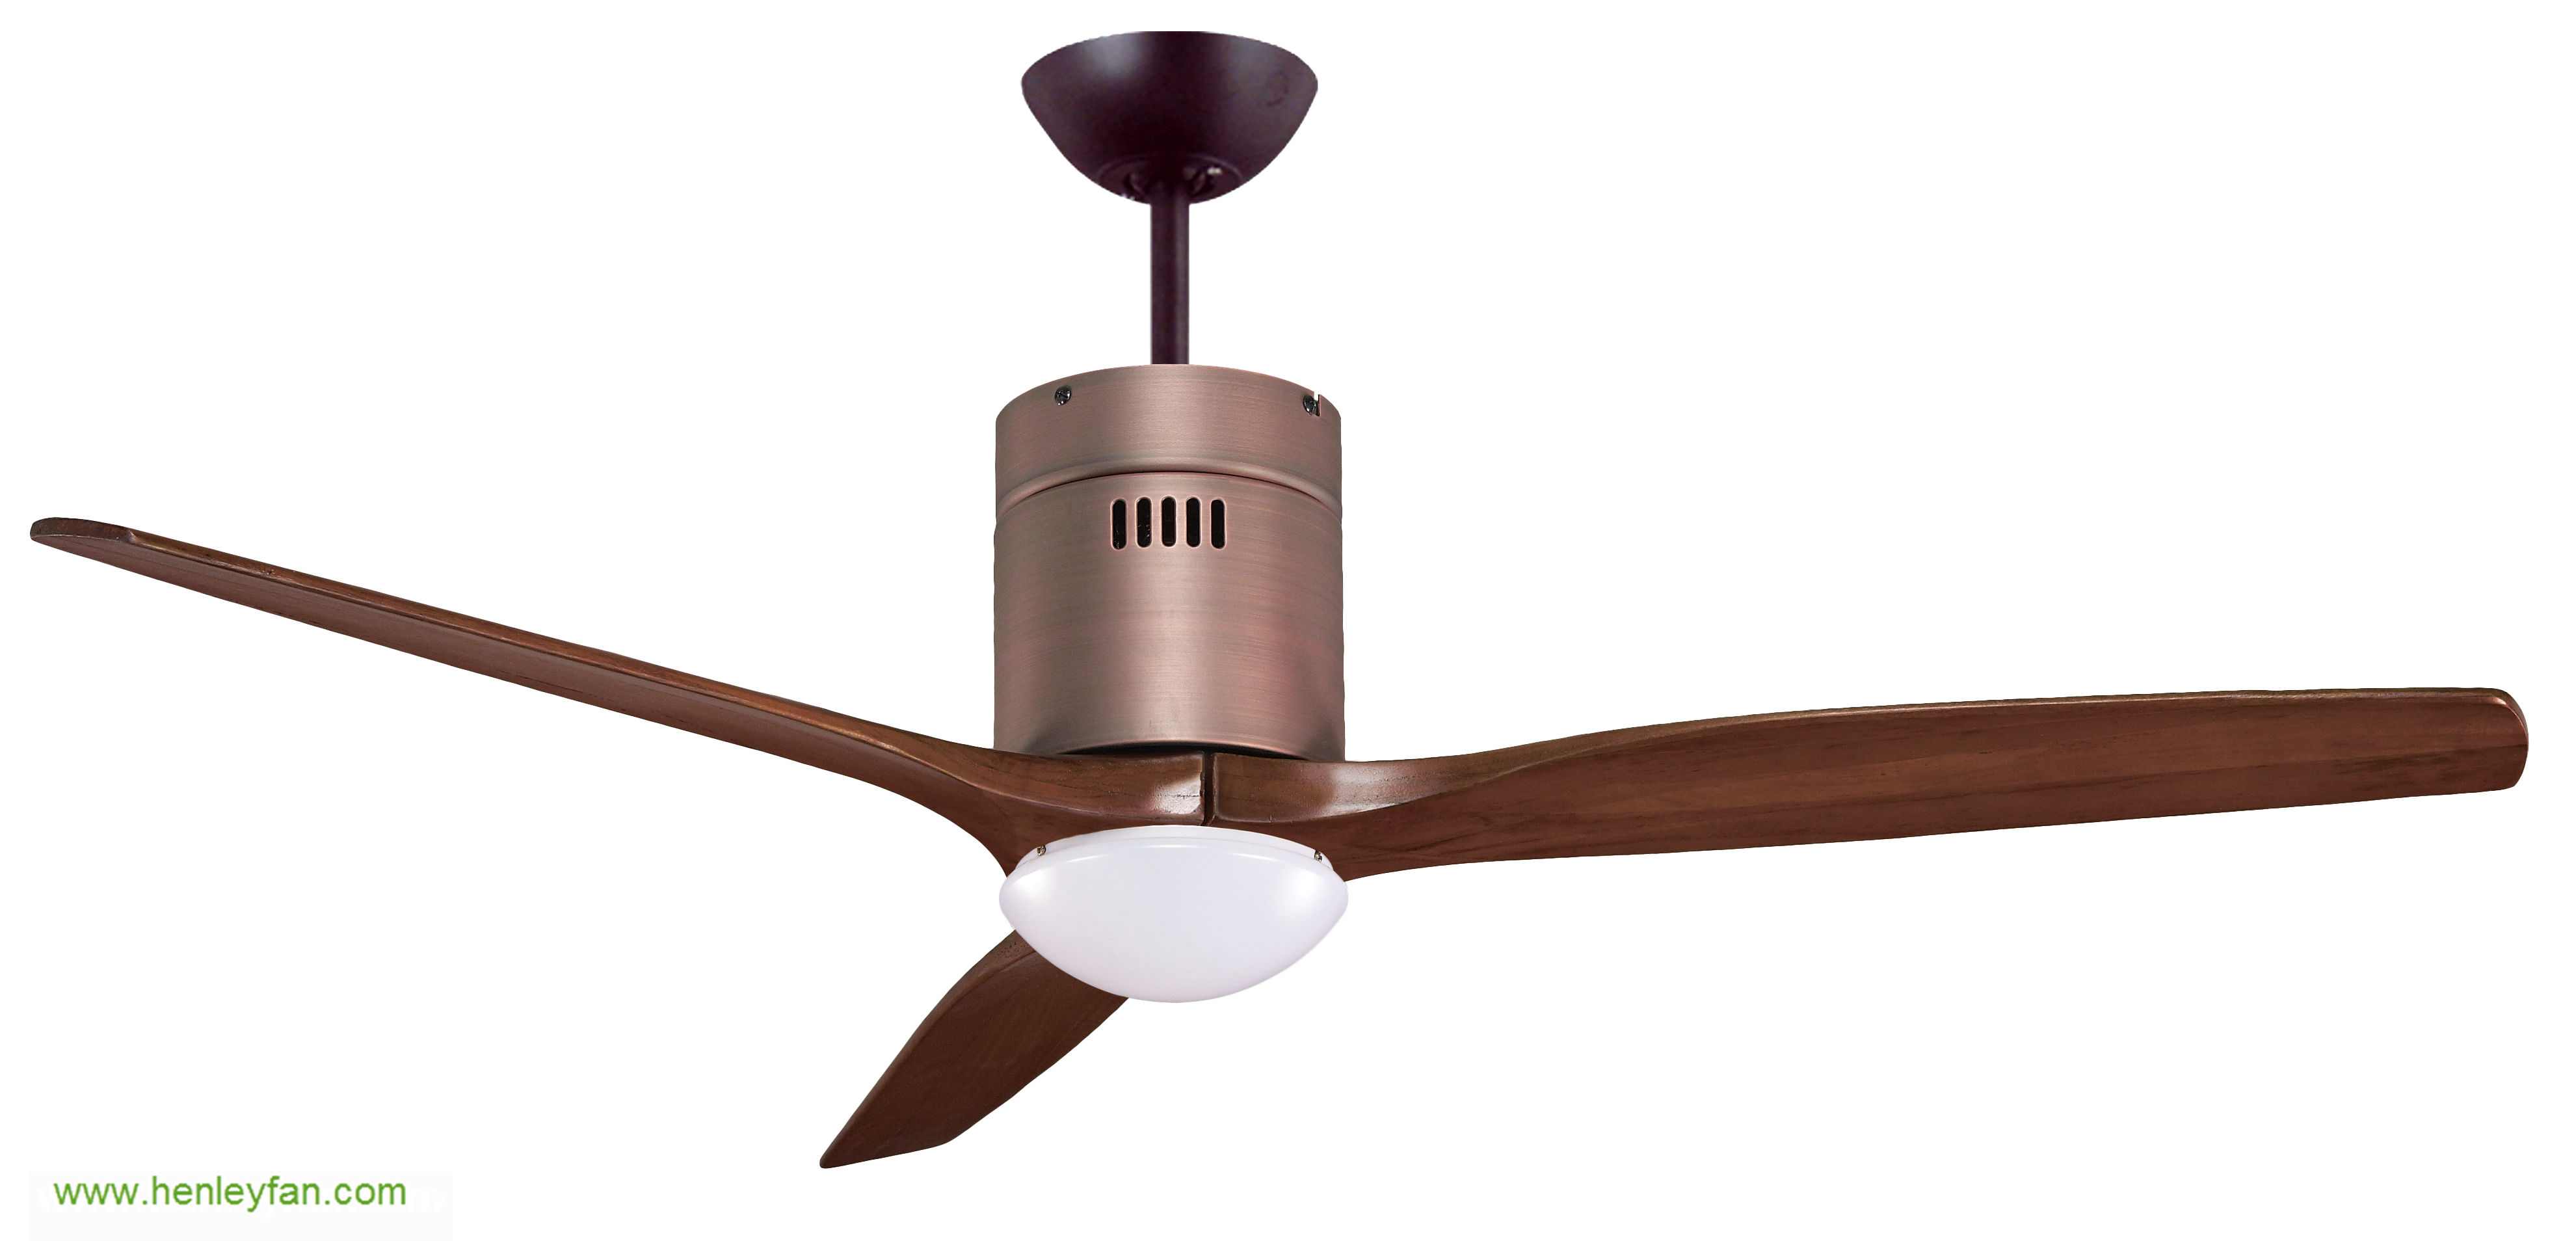 Ceiling Fans With Lights : Mrken pilot d designer low energy dc ceiling fan with led